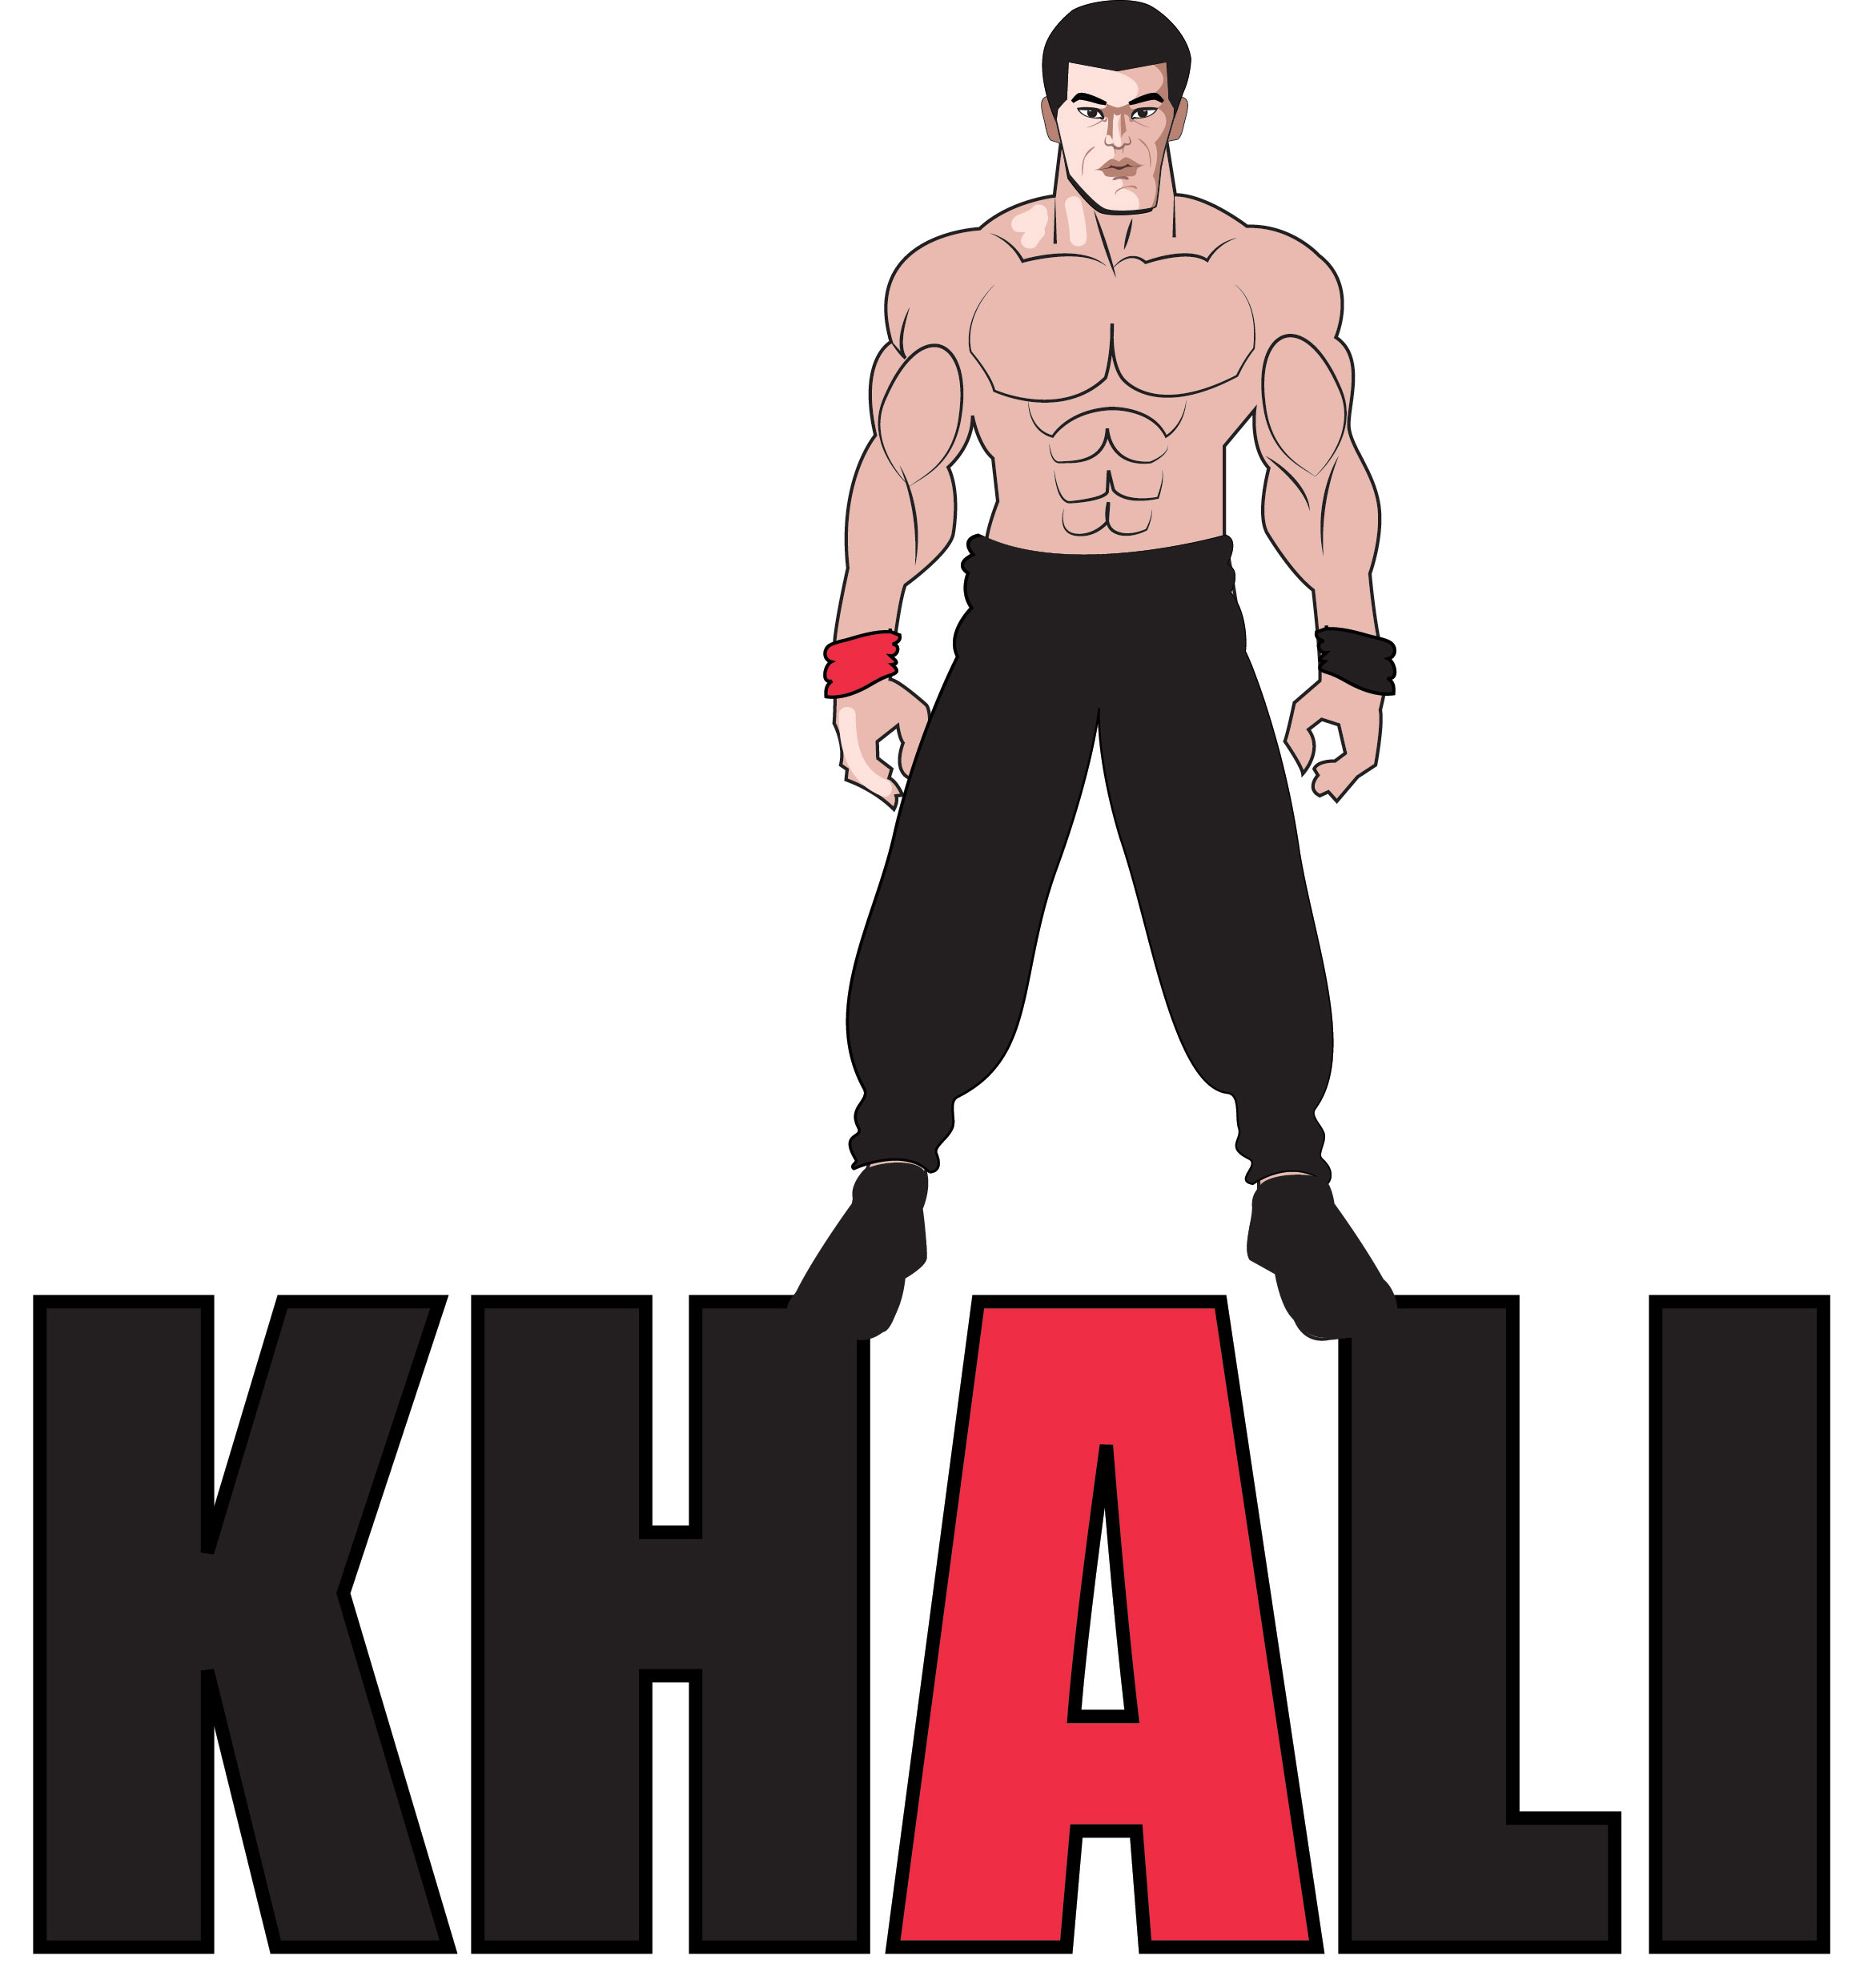 khali the super hero